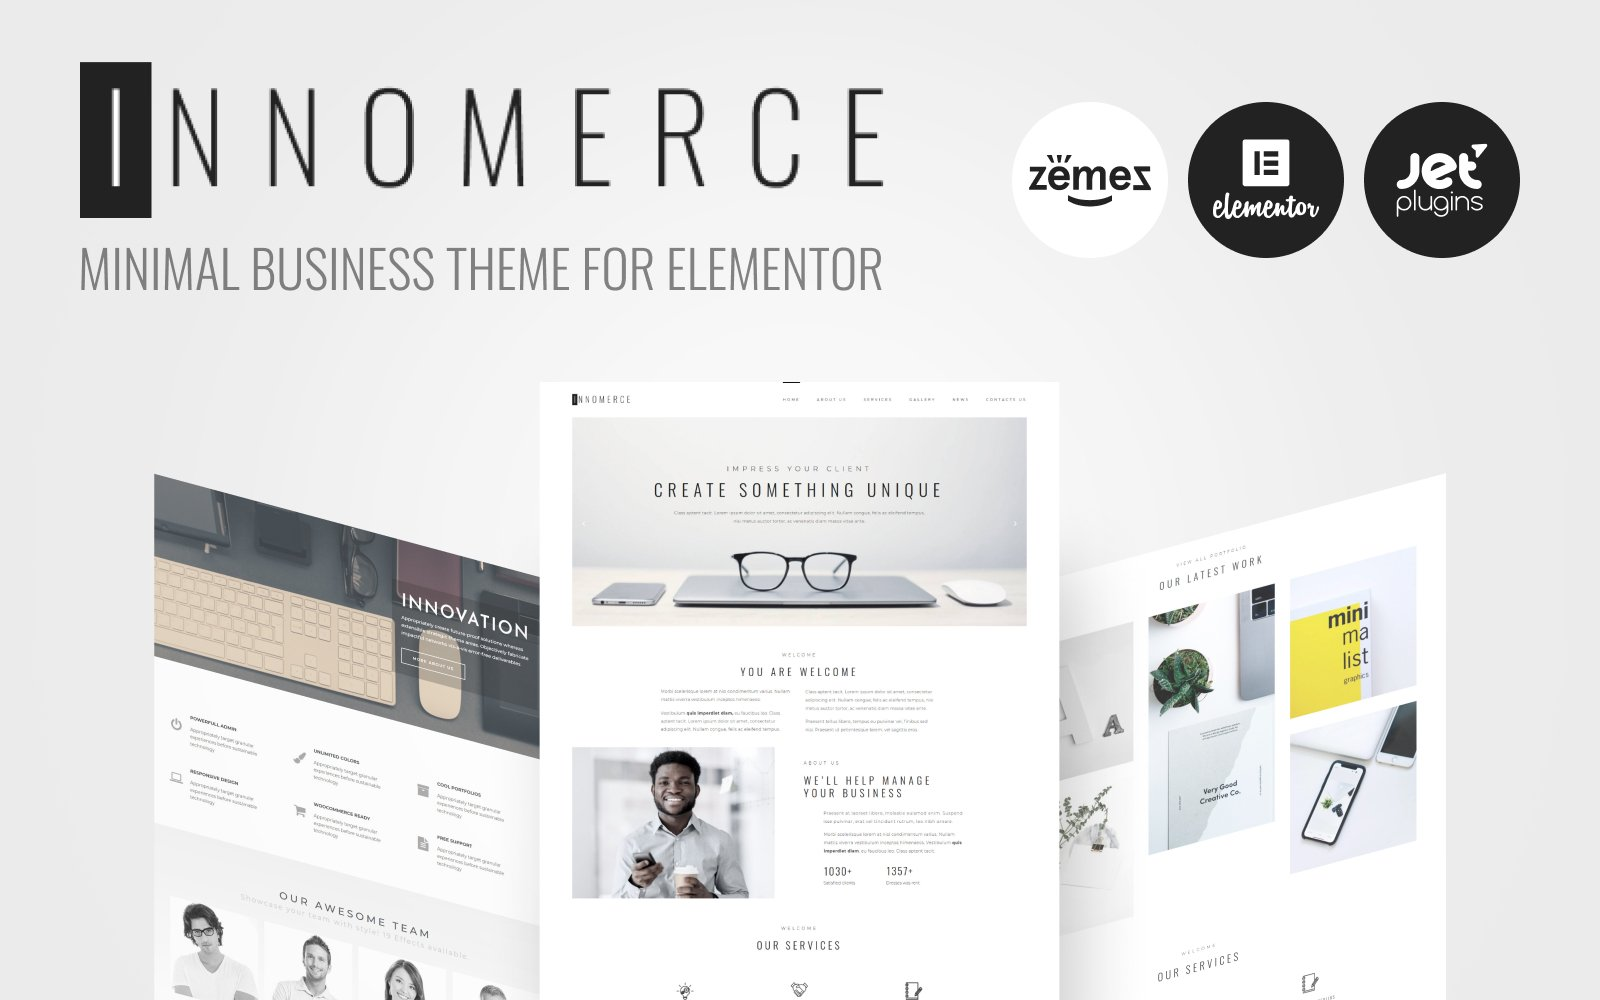 Responsivt Innomerce - Business Multipurpose Minimal Elementor WordPress-tema #81170